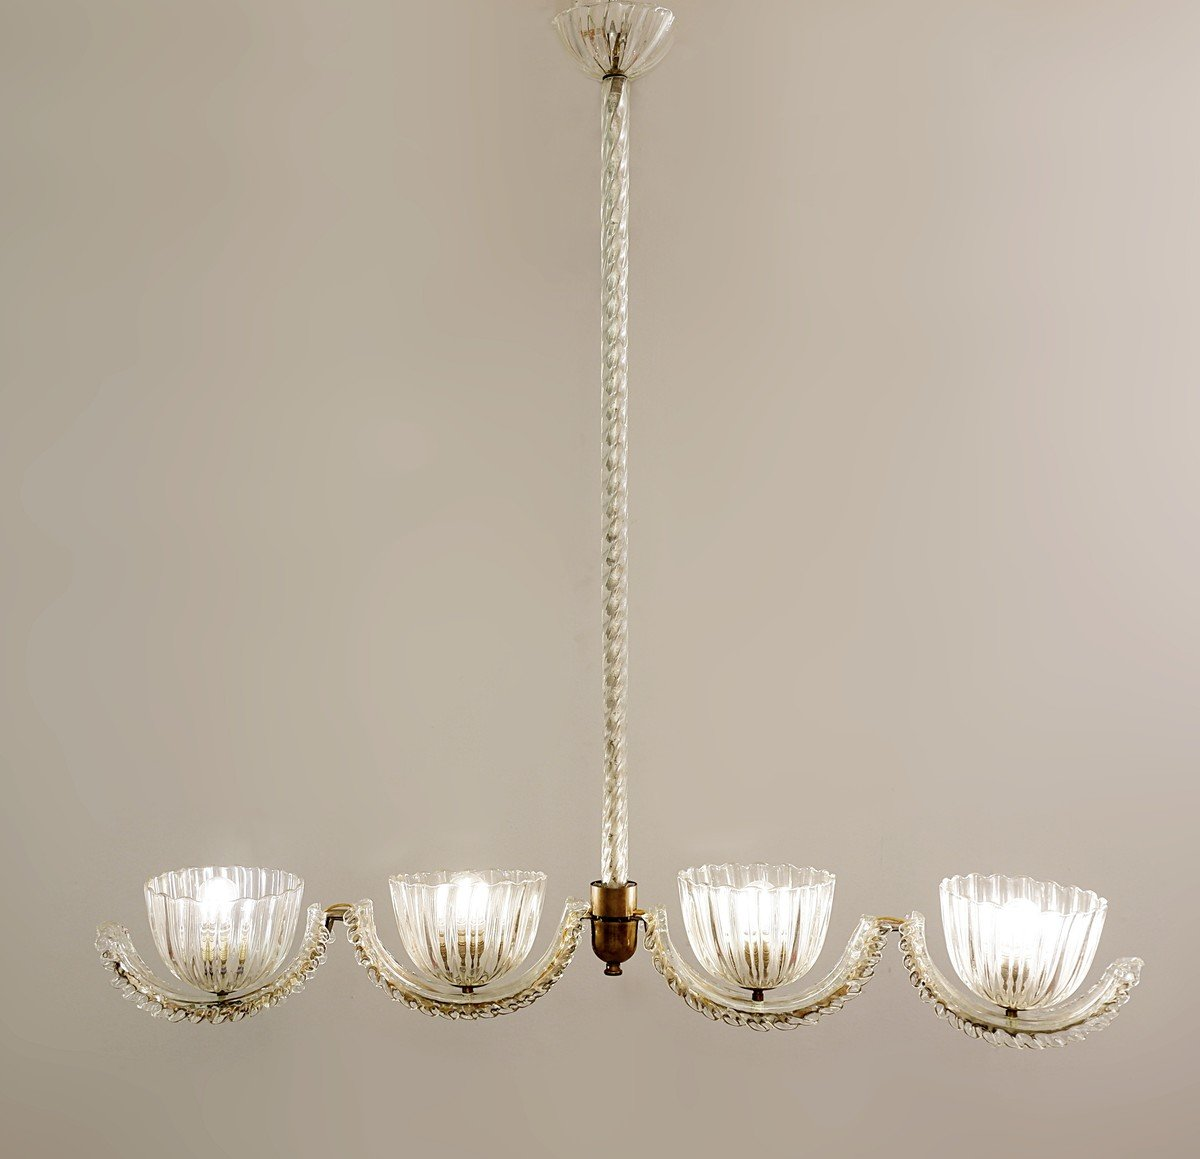 Ercole Barovier Murano 4 Luminous Arms - 1930